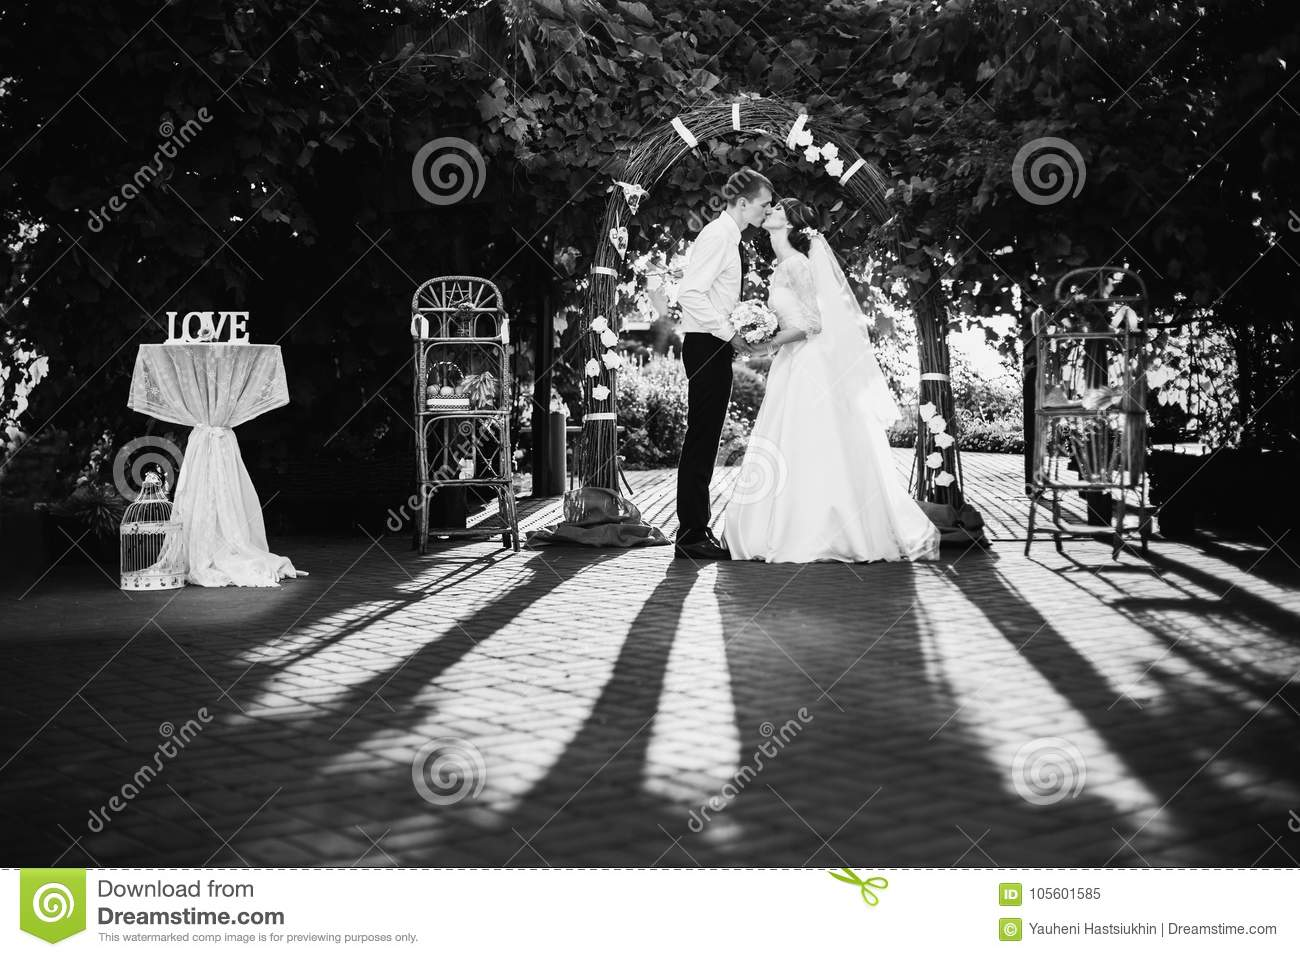 Artistic Black And White Photography Wedding Photography Stock